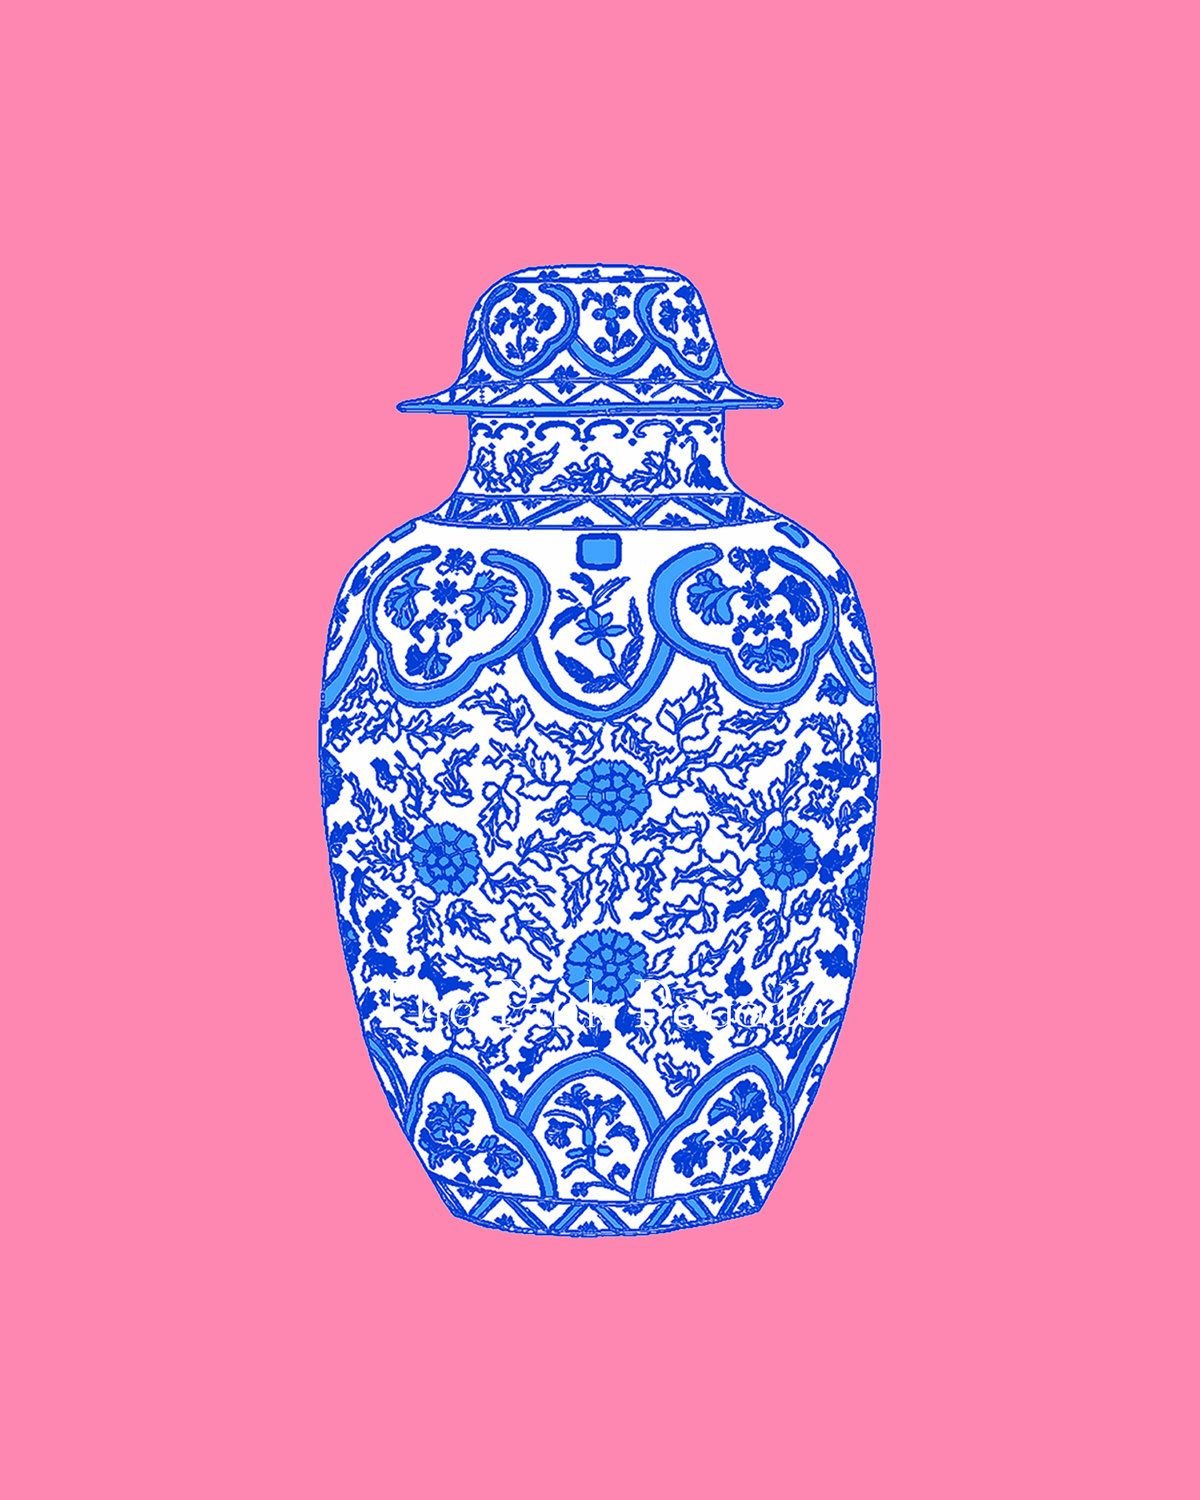 Ming blue chinoiserie ginger jar on coral pink x giclee coral